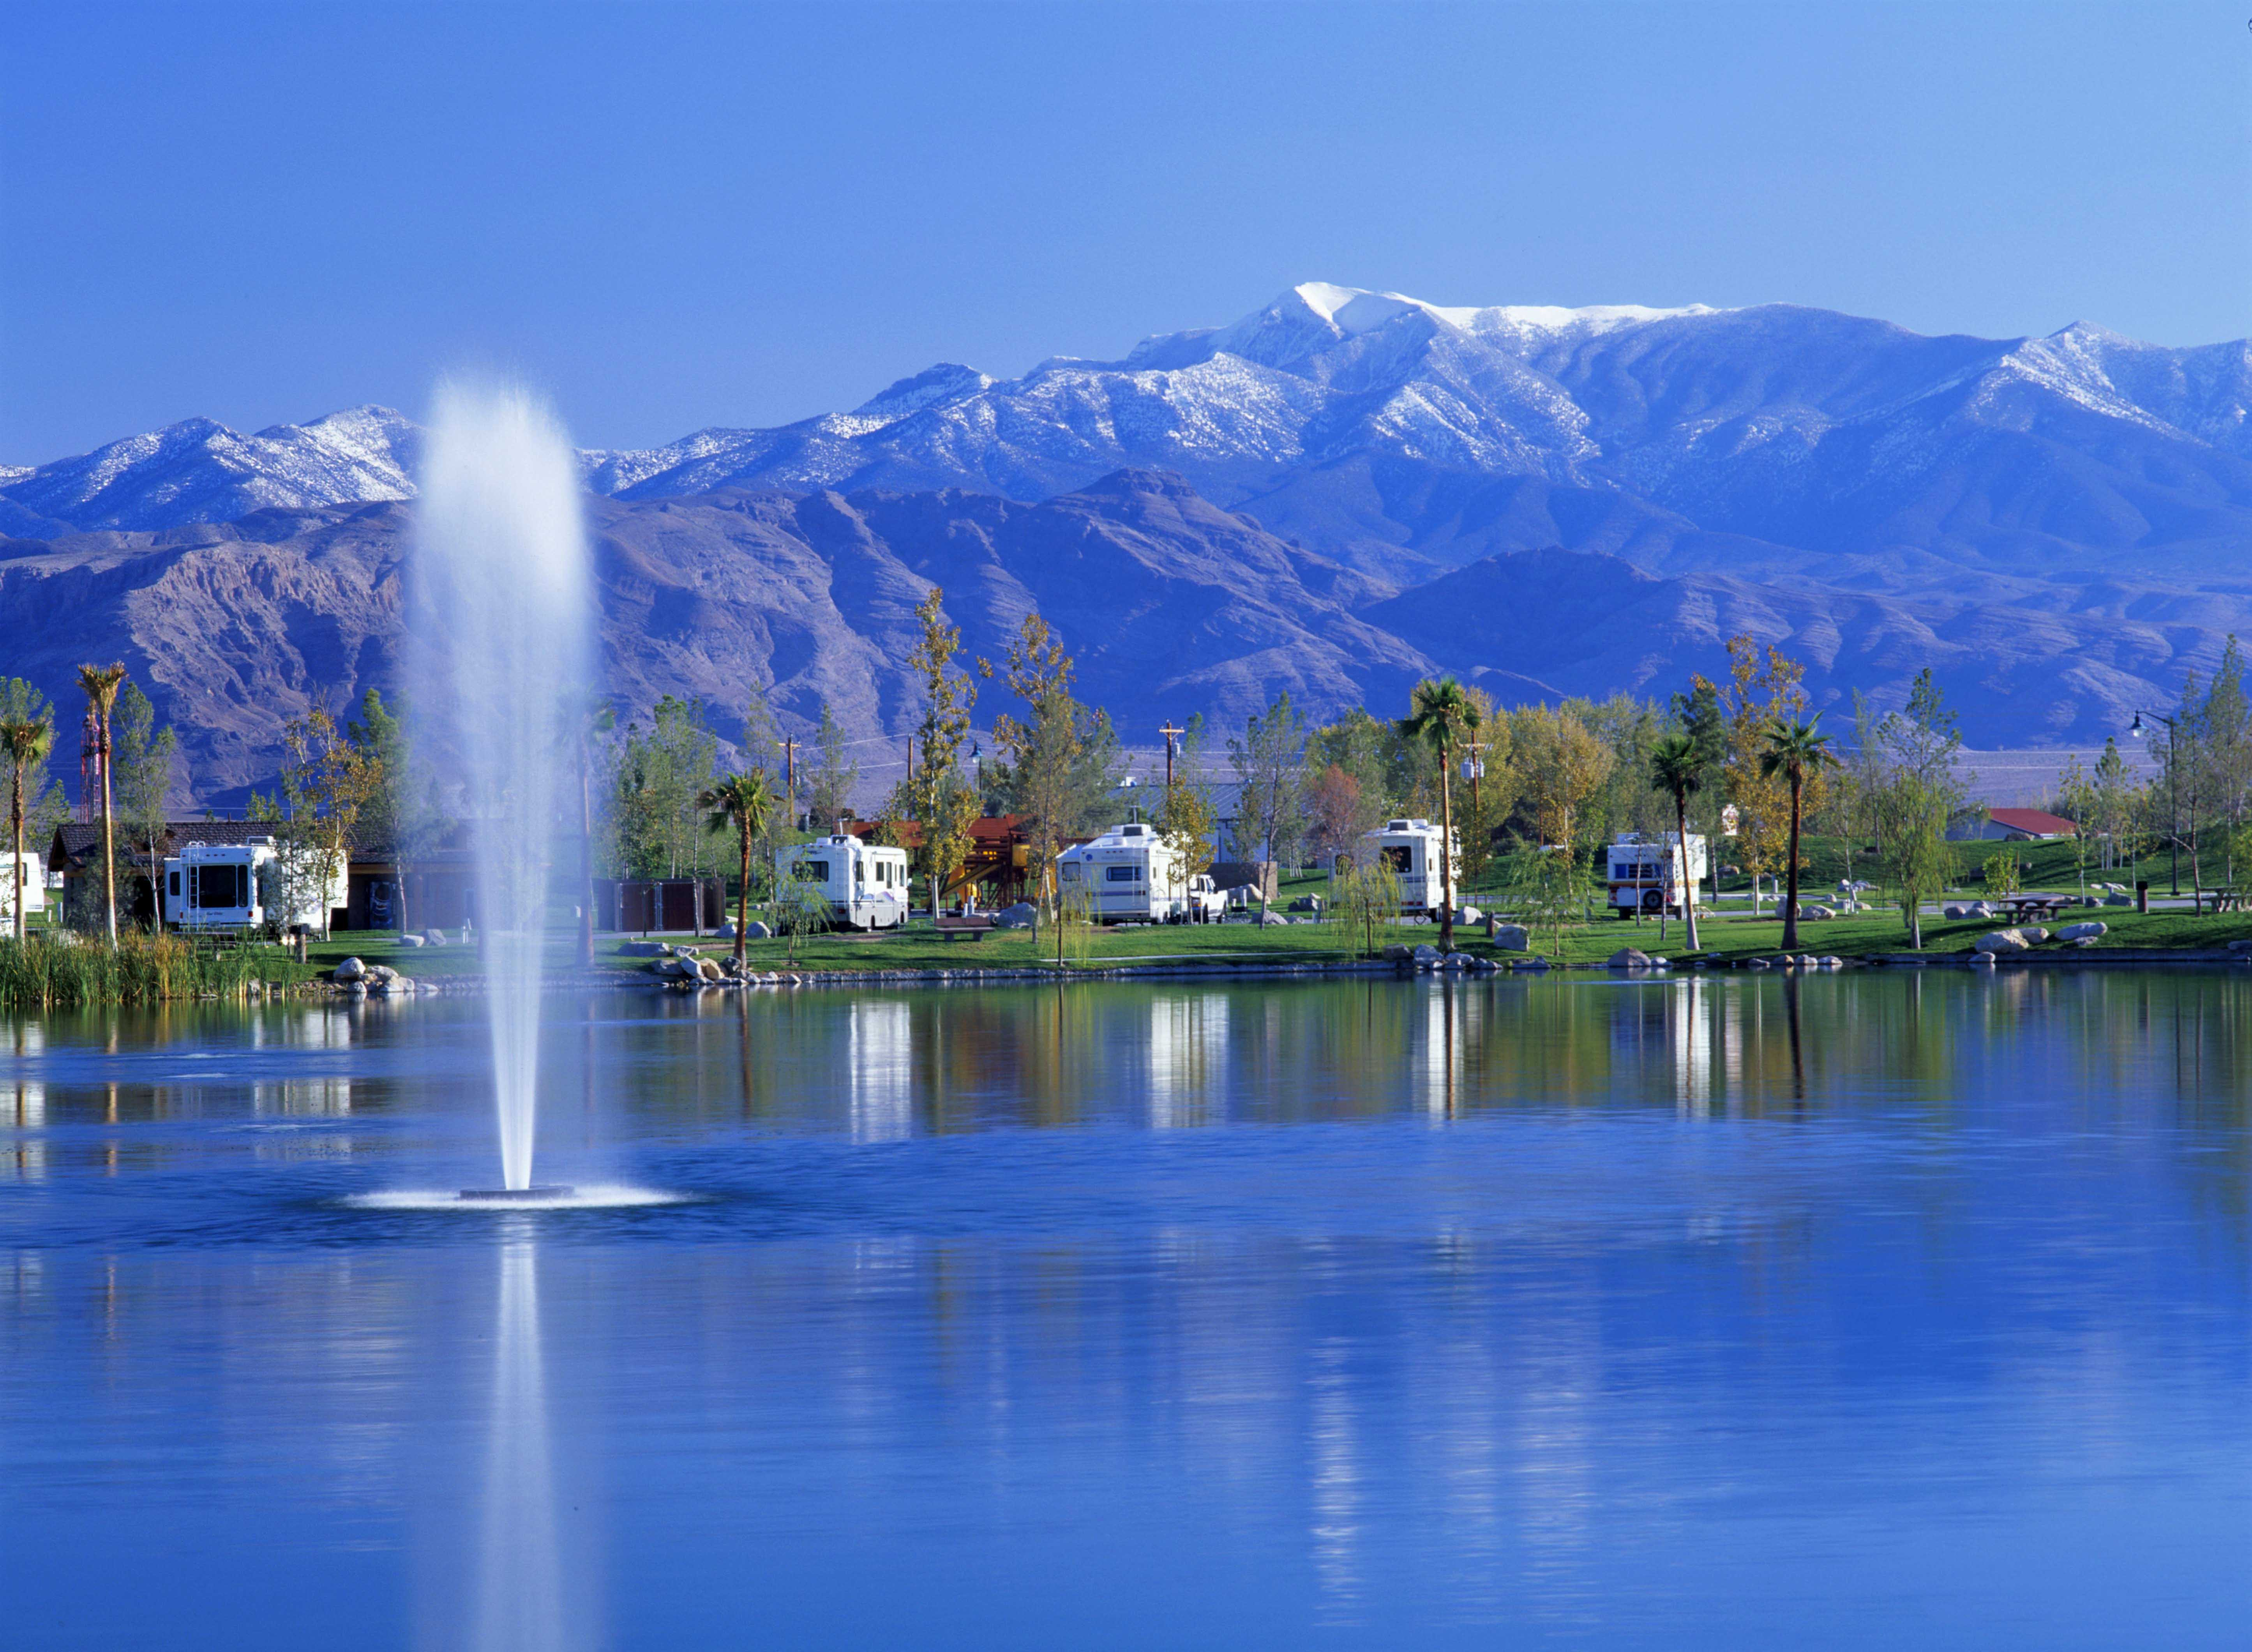 Lakeside Casino & RV Park in Pahrump is the Perfect Location for a Fall Getaway